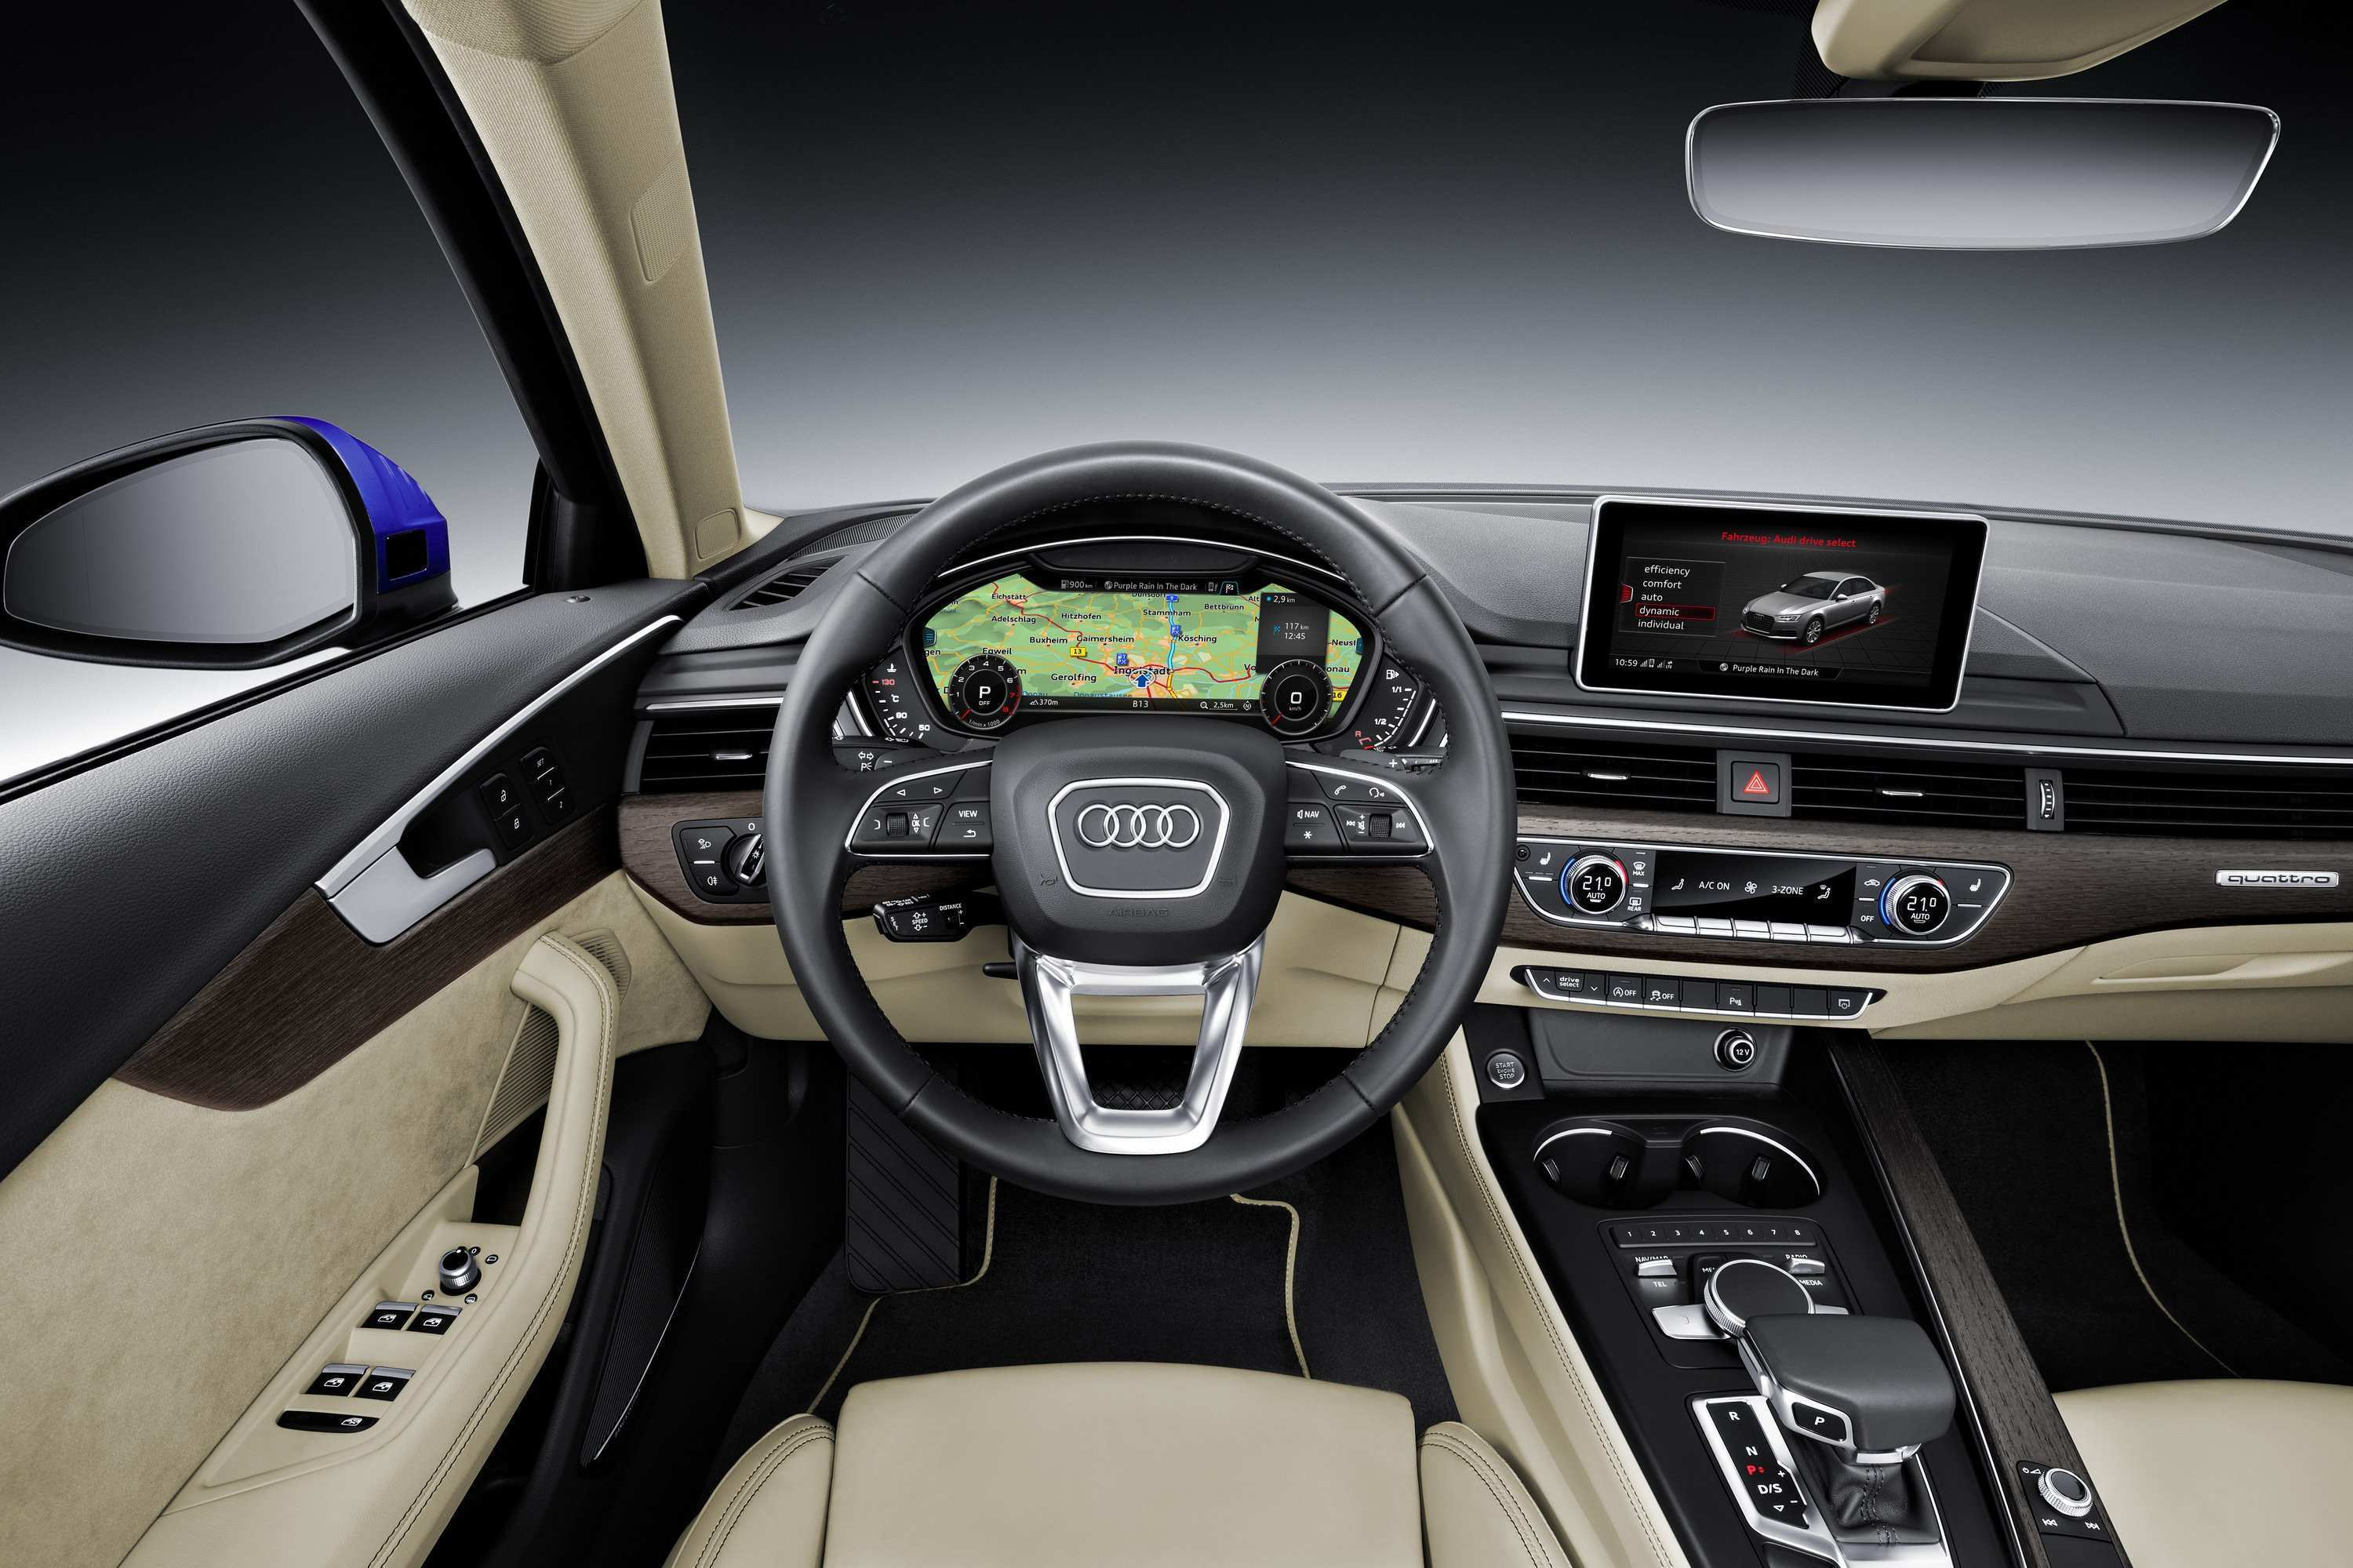 57 All New 2019 Audi A4 Interior Review with 2019 Audi A4 Interior